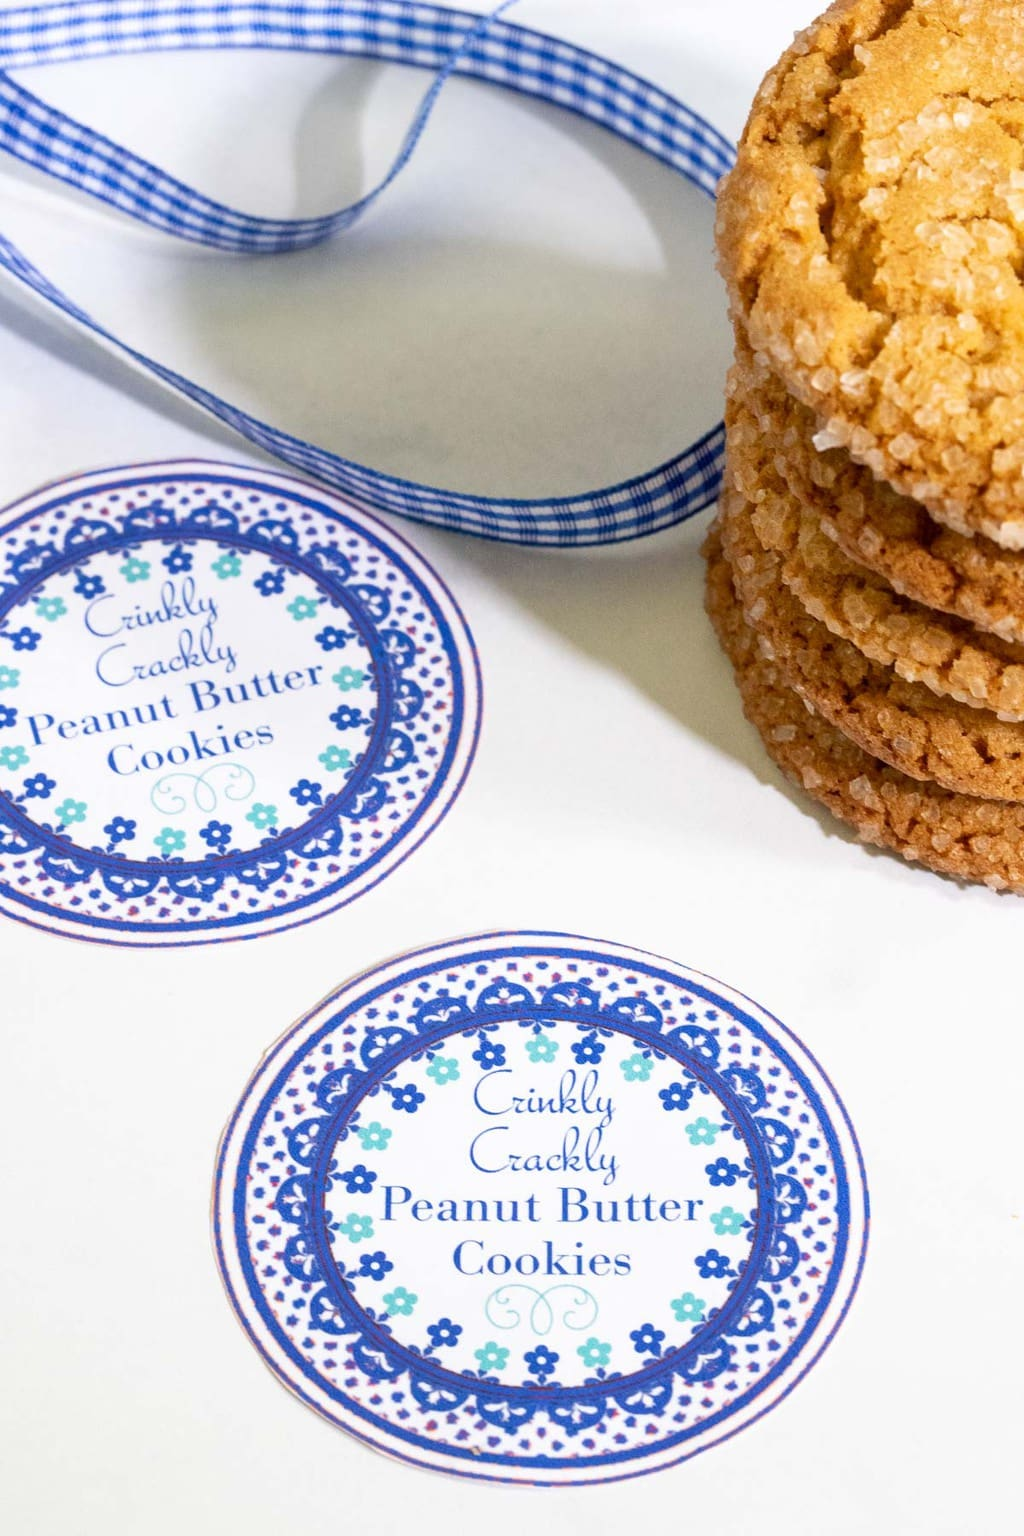 Vertical photo of a Crinkly Crackly Peanut Butter Cookie custom gift label next to a stack of cookies.